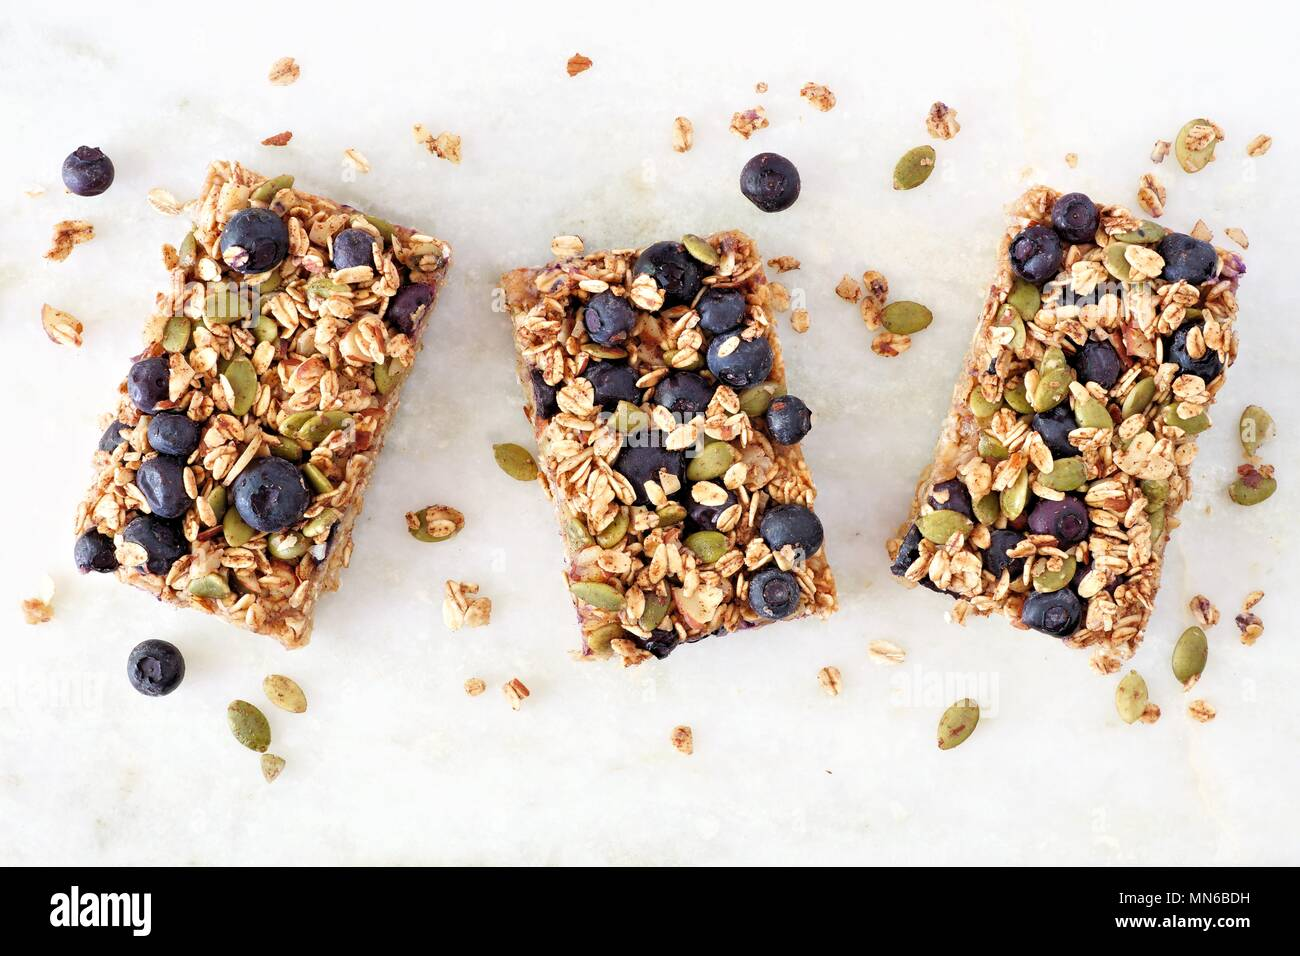 Superfood breakfast bars with oats and blueberries, above view on white marble background - Stock Image